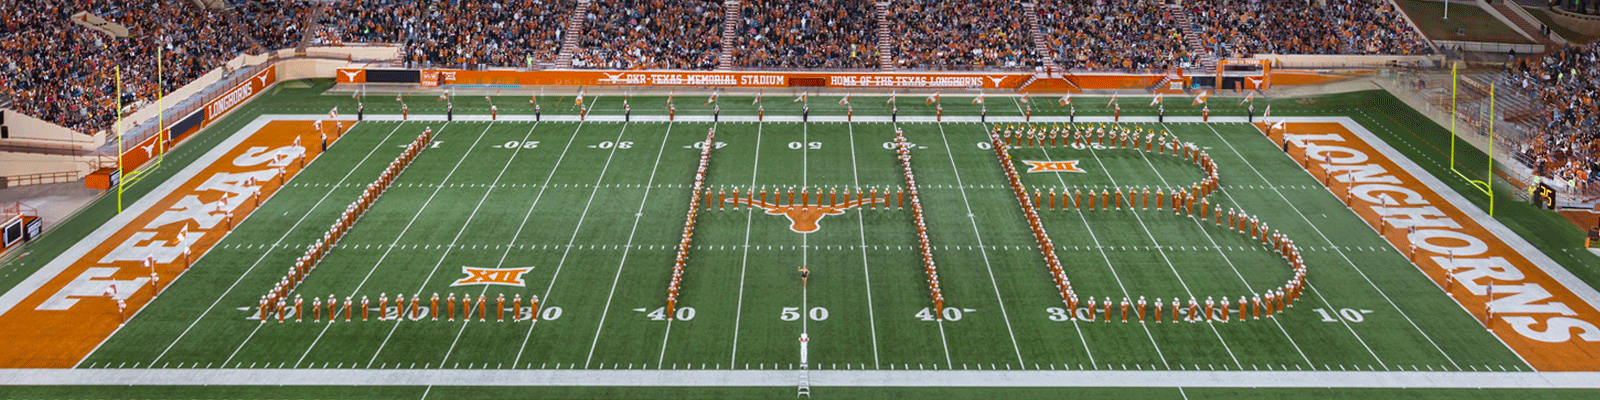 Band spells out LHB on the field